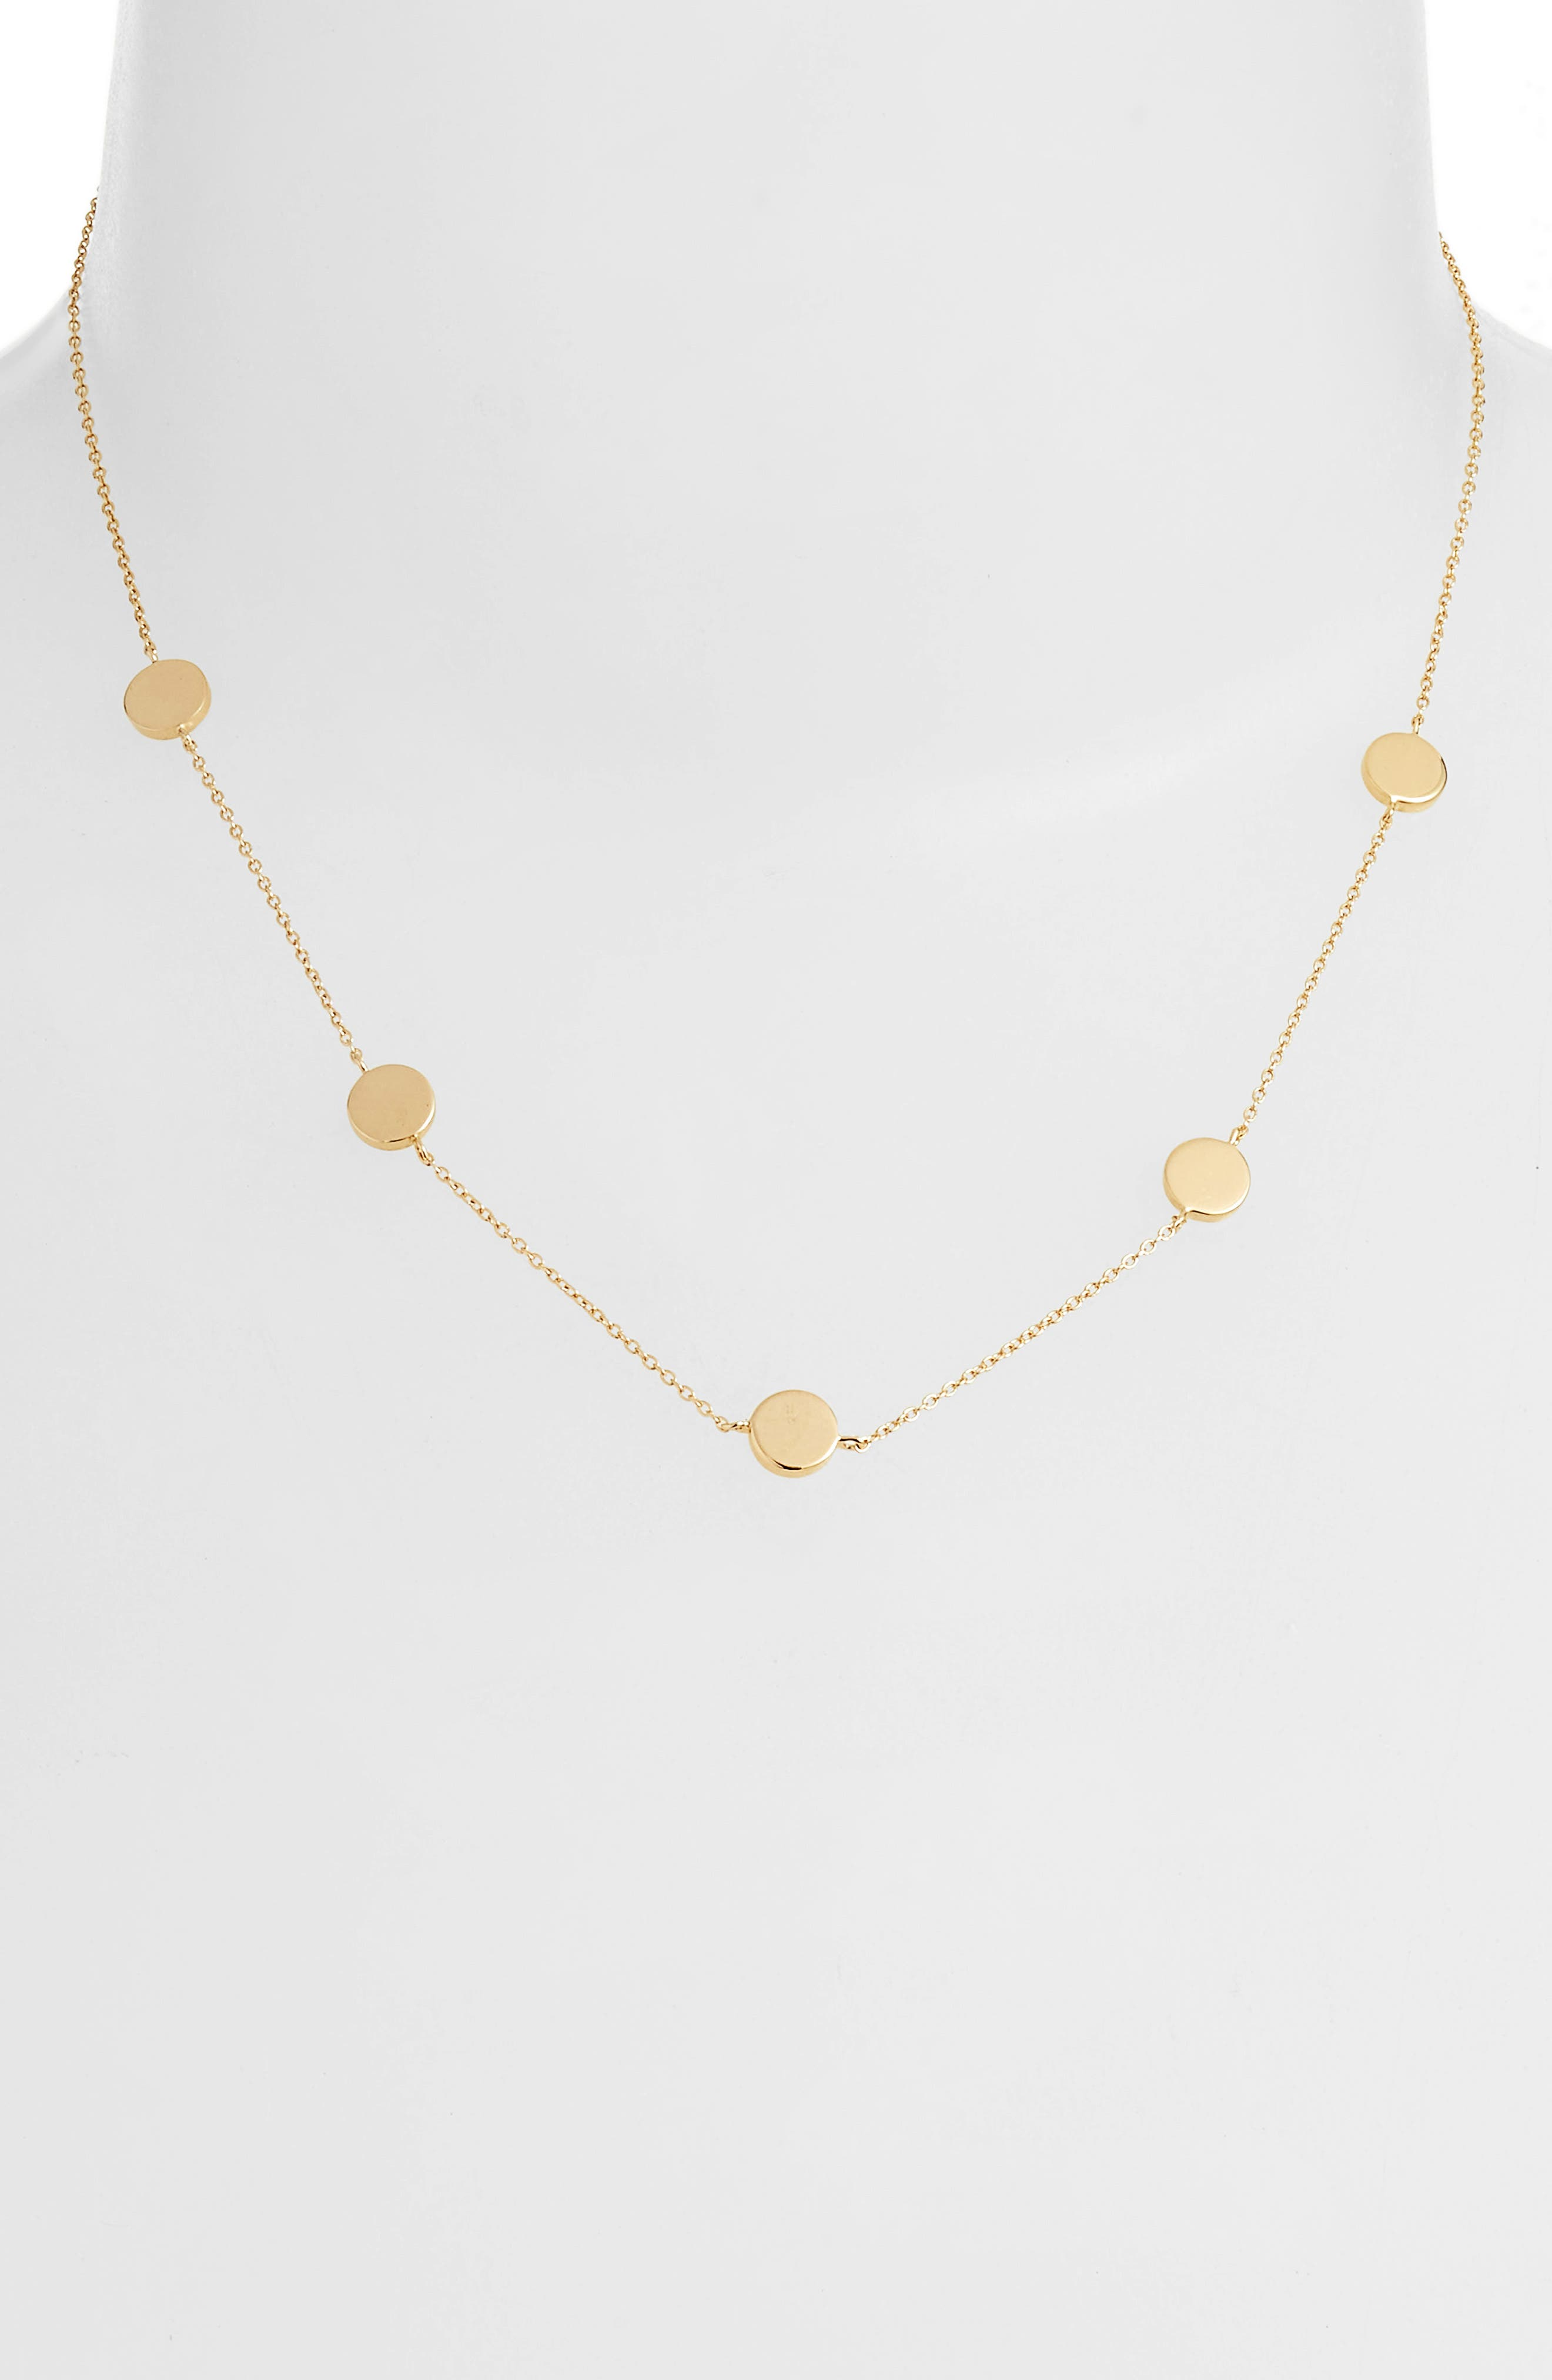 Lupita Necklace,                         Main,                         color, YELLOW VERMEIL